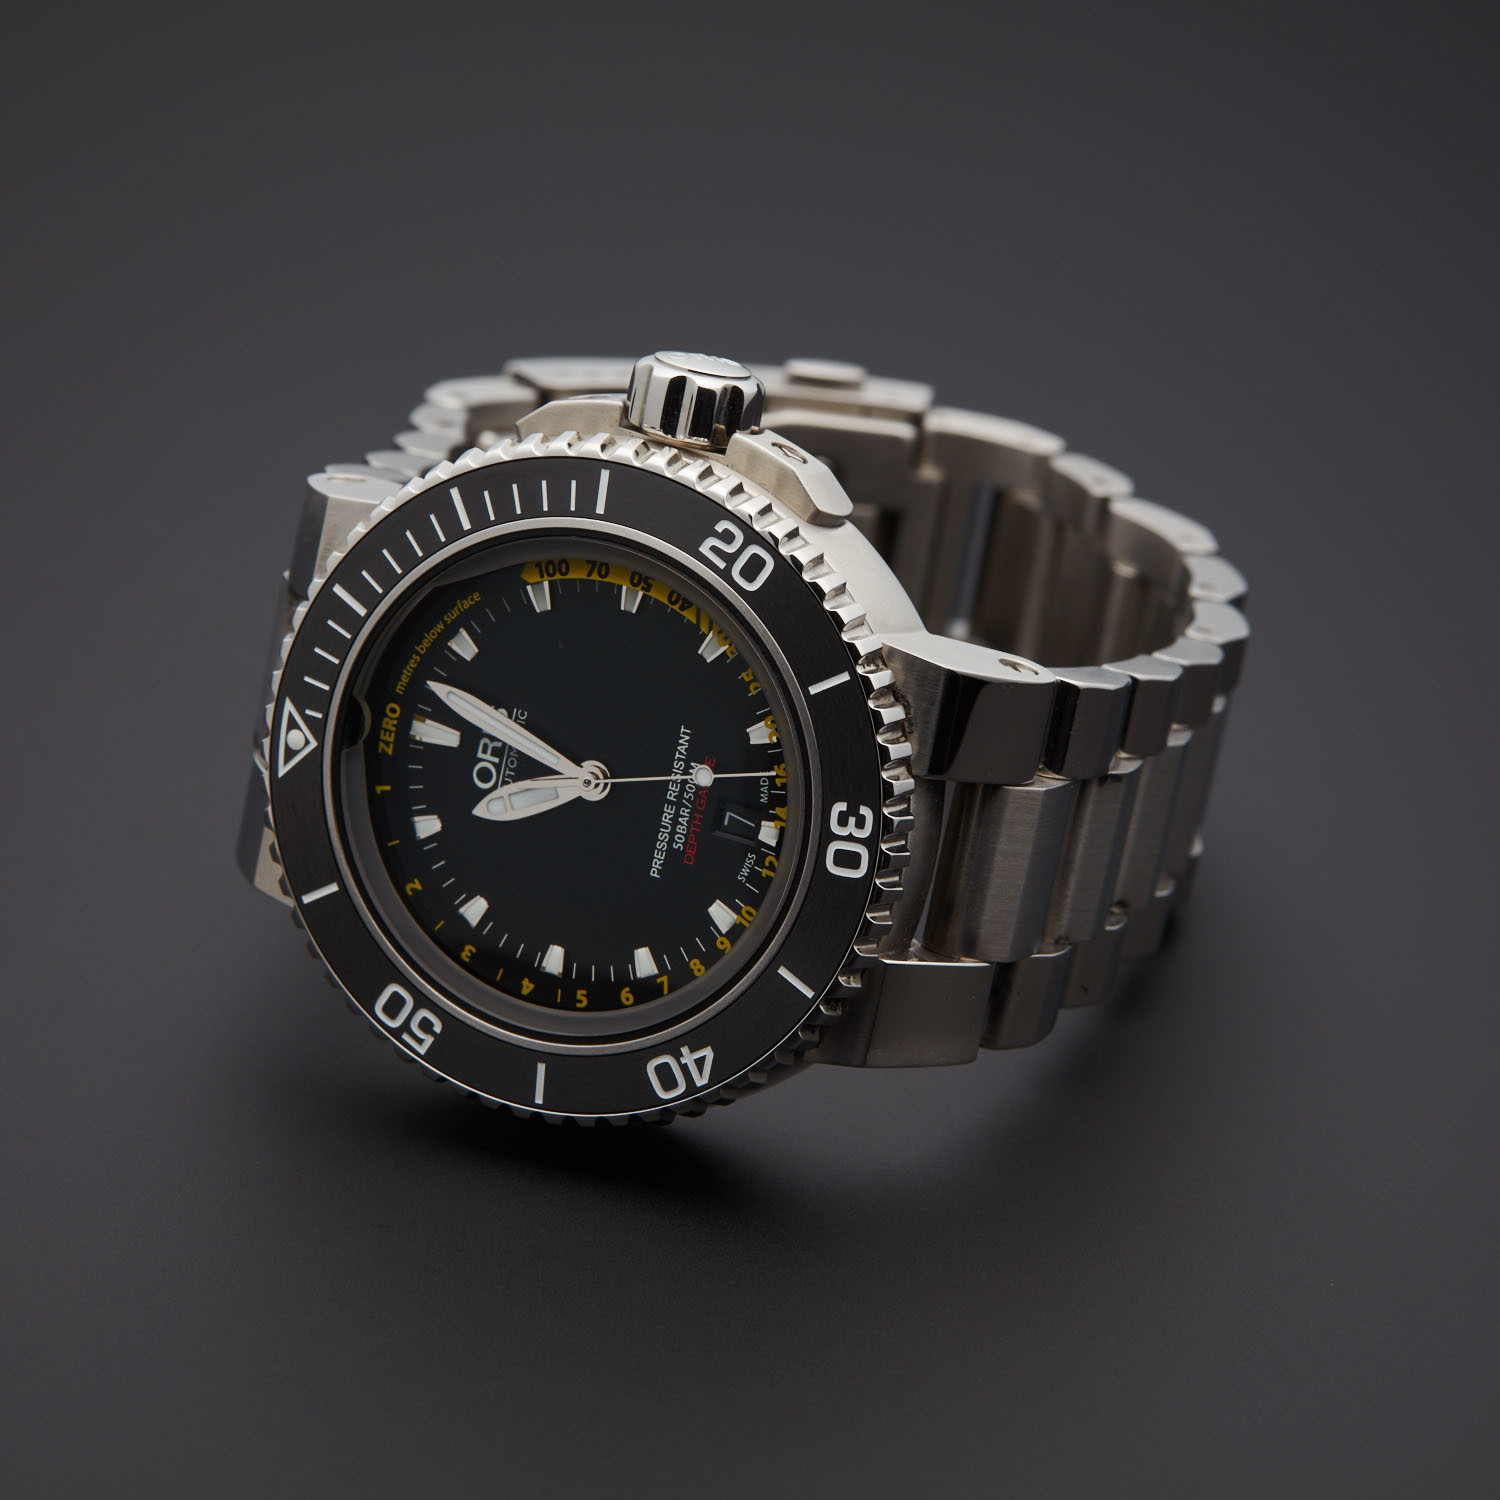 26b53dbe2 Oris Aquis Depth Gauge Automatic // 733 7675 4154 MB // Pre-Owned ...